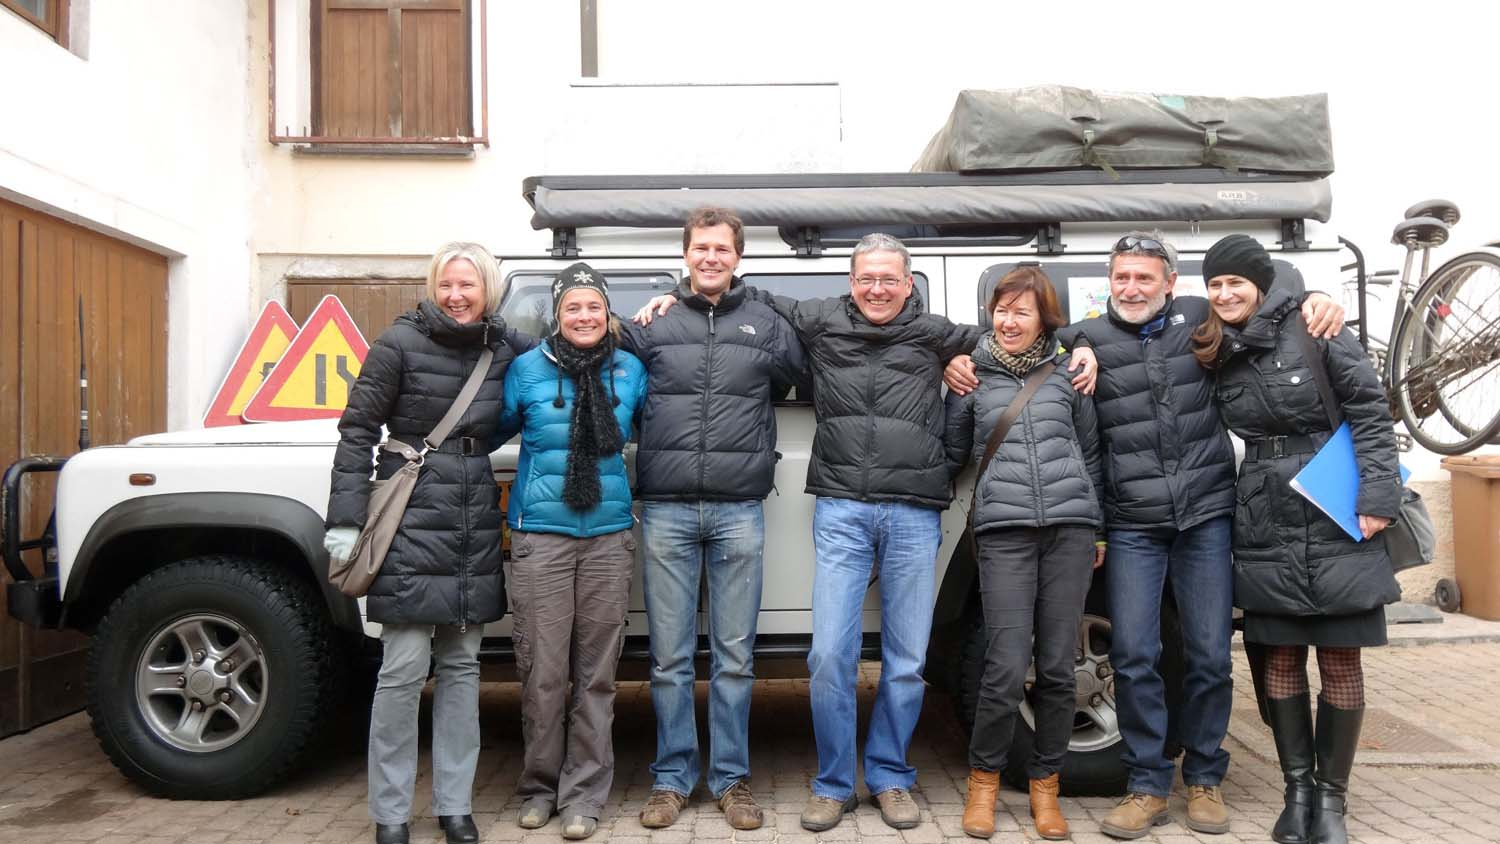 Petra, Lojze, Majda, Milos and Anna - just some of our wonderful new friends in Škofja Loka.